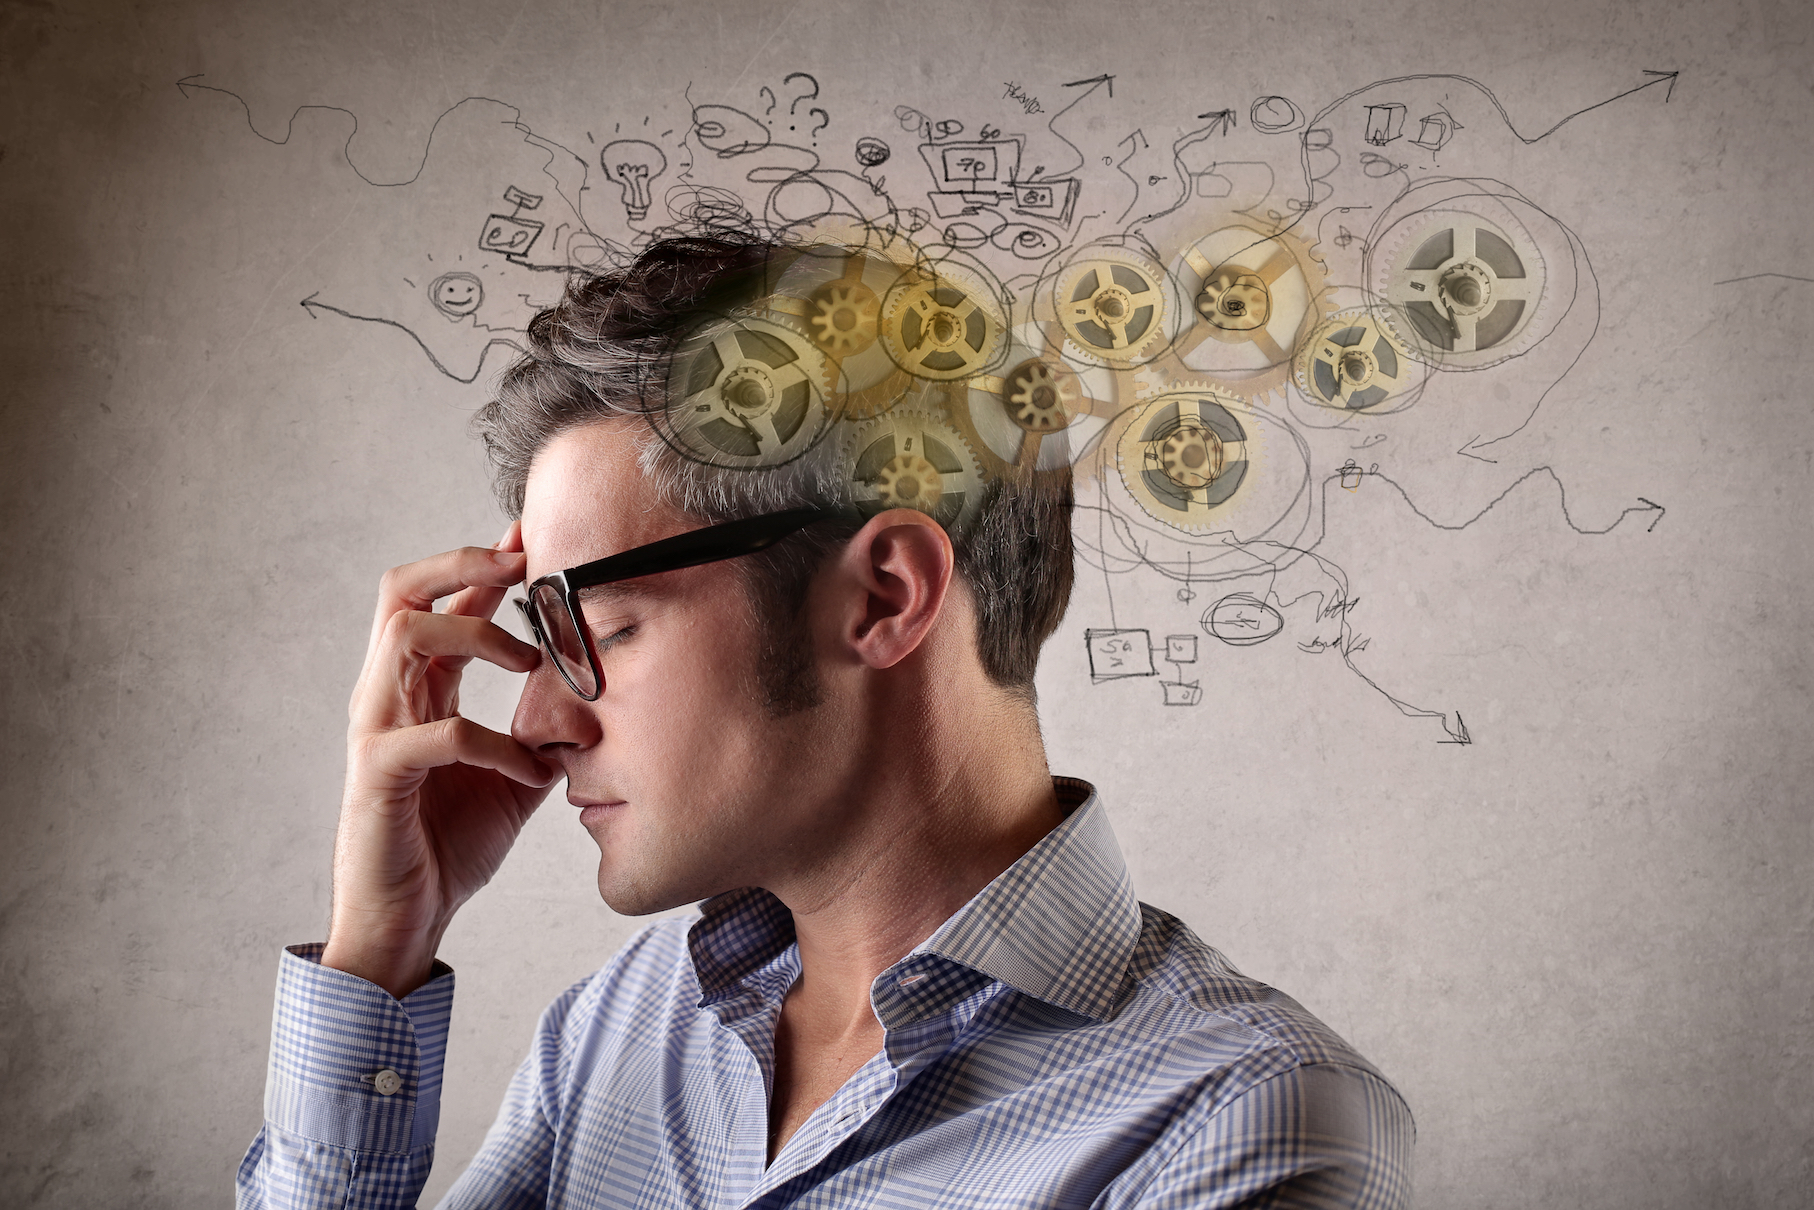 A new study describes what happens in the brain that allows people to feel overly and unrealistically optimistic.